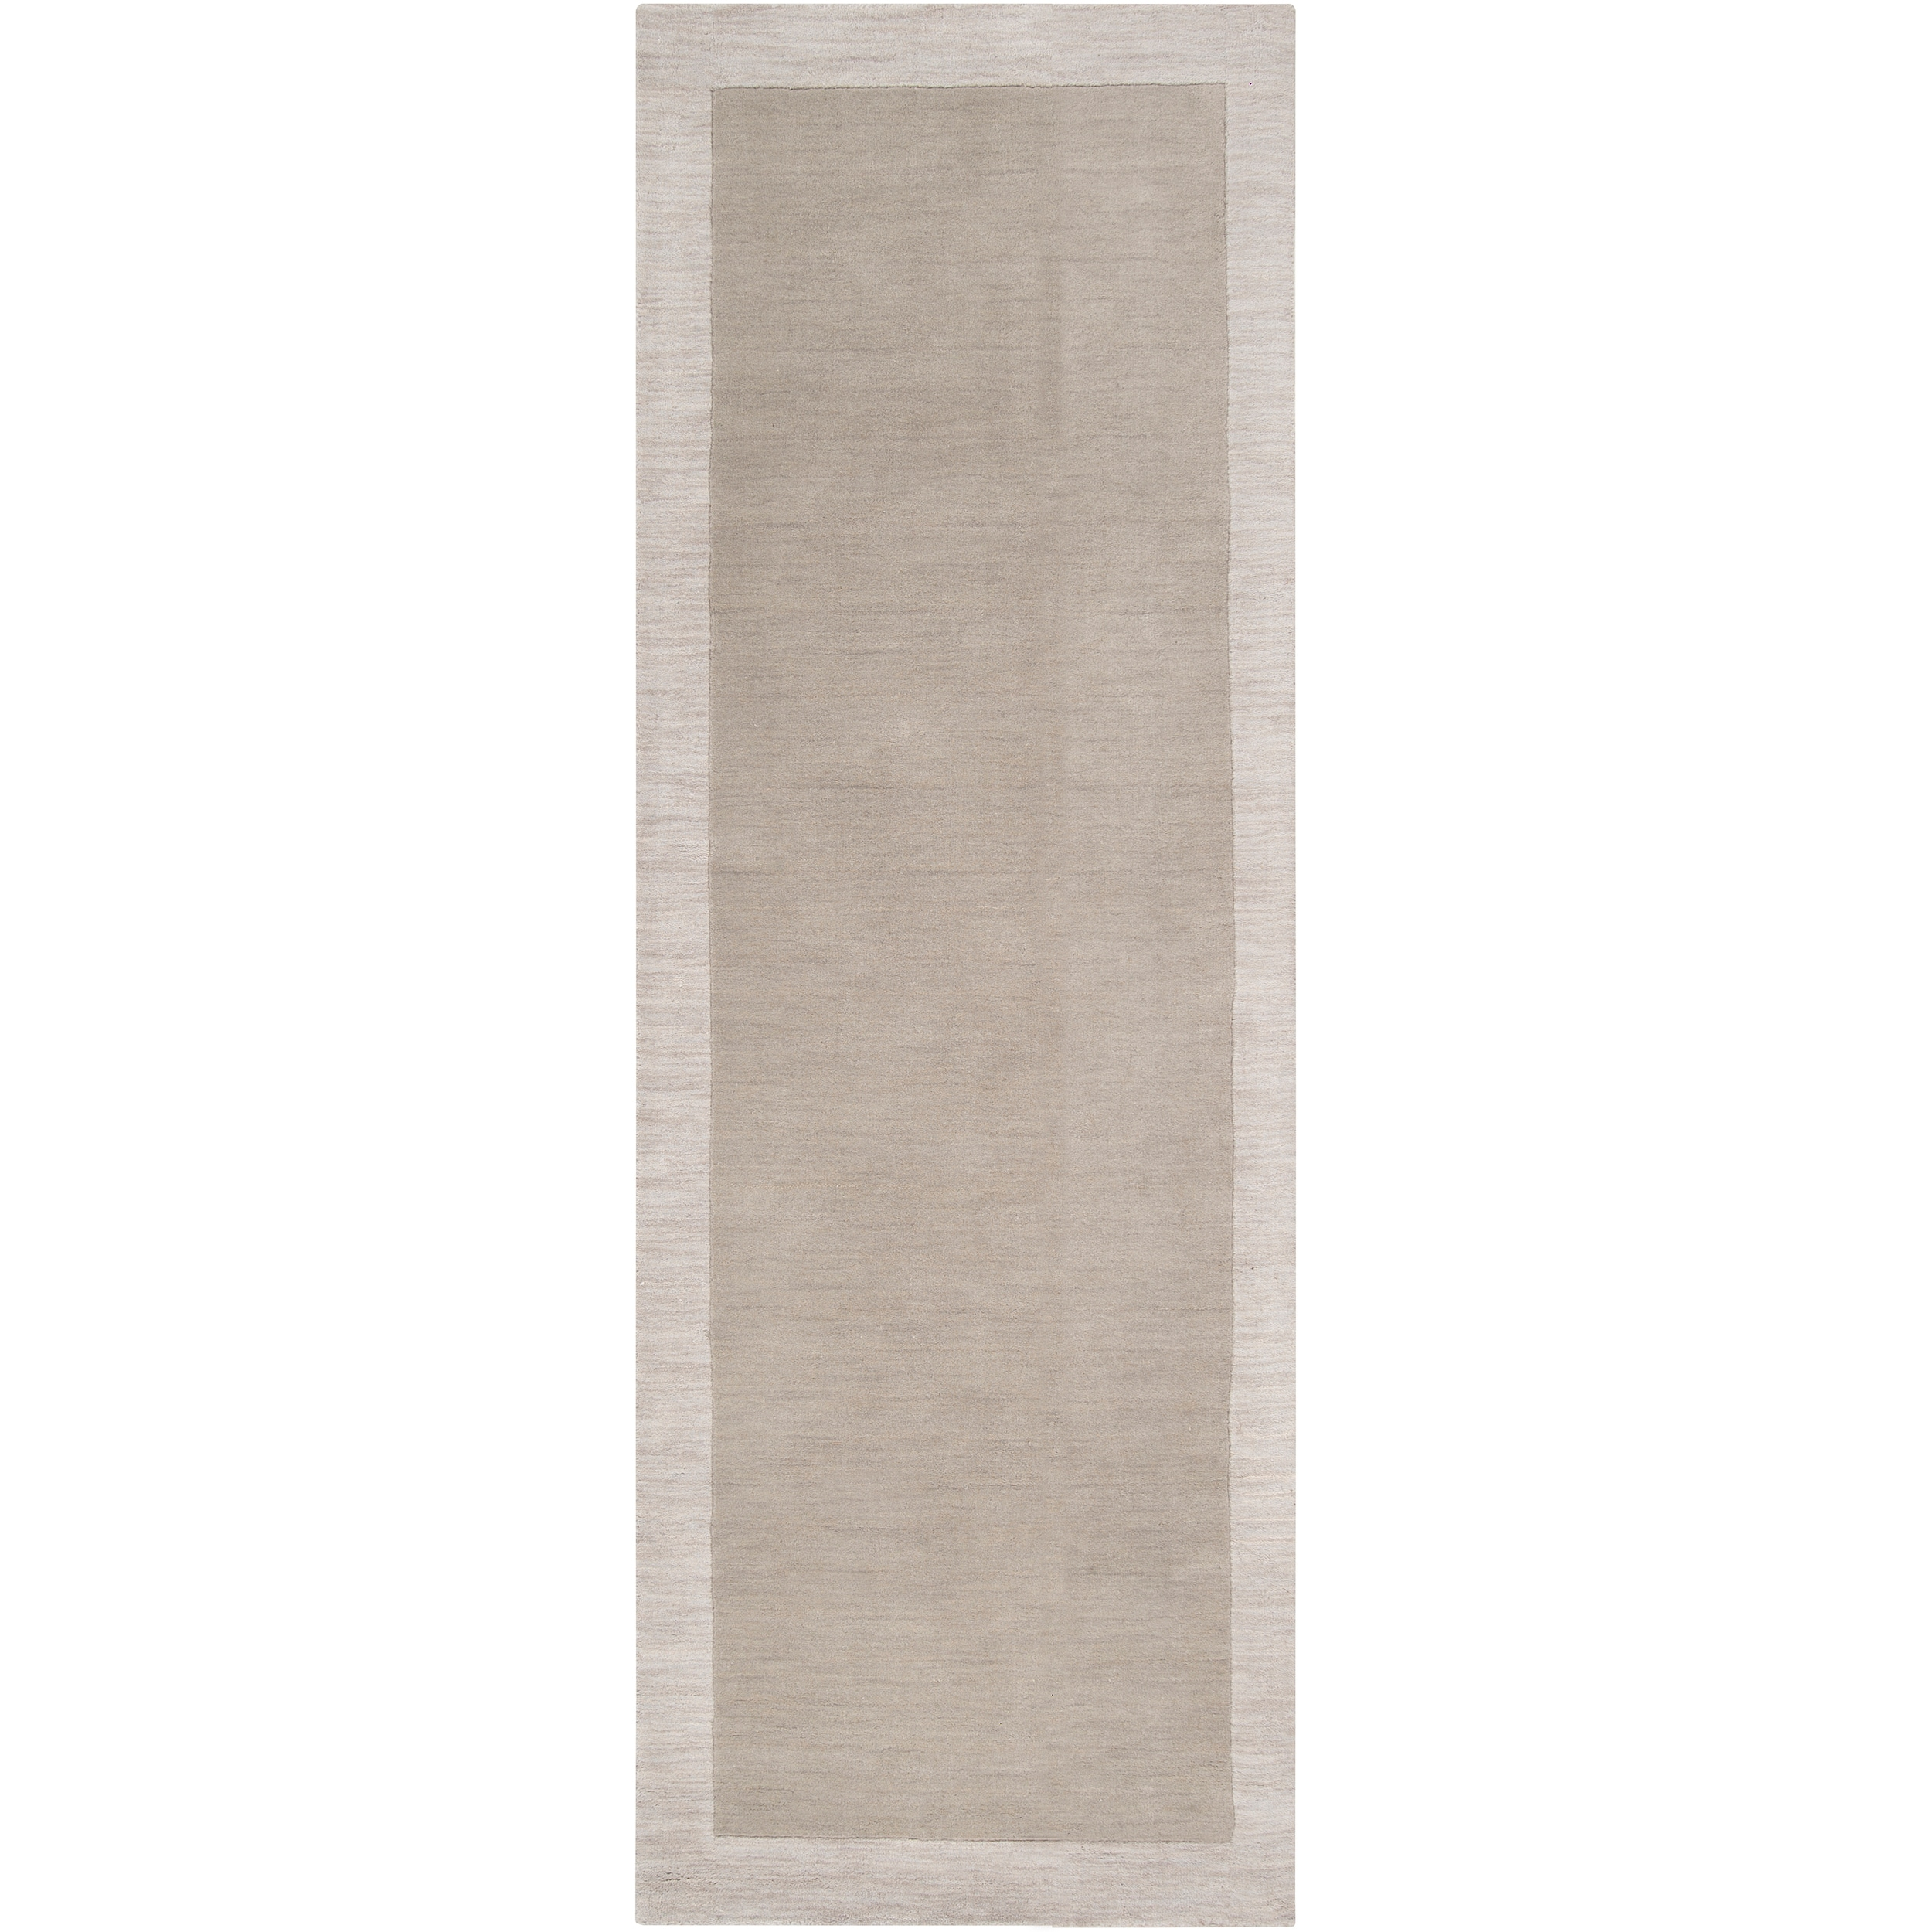 Hand-tufted angelo:HOME Gray Madison Square Wool Rug (2'6 x 8')